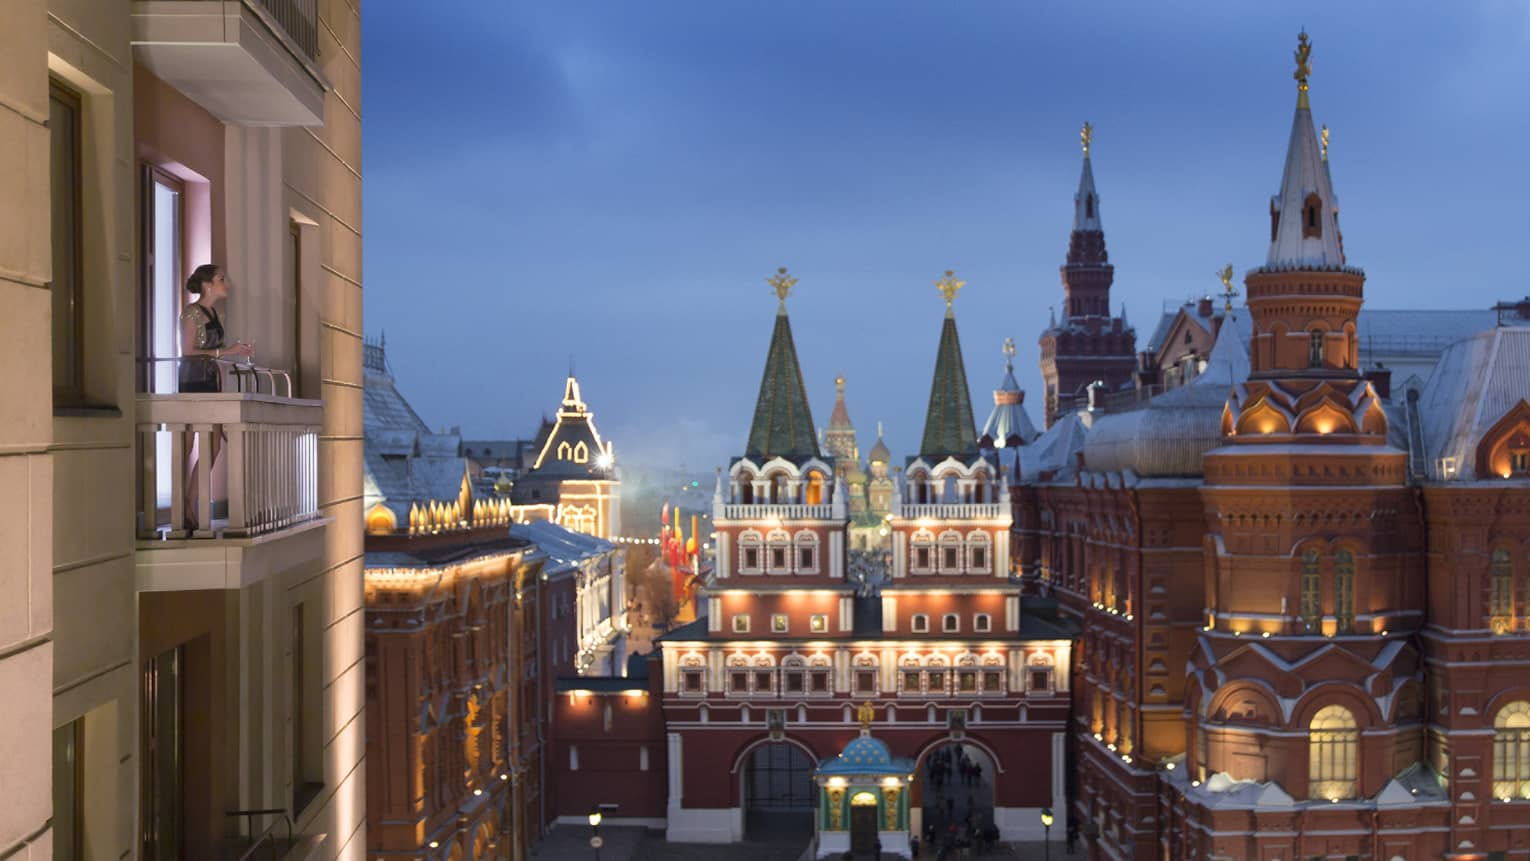 A view of Moscow's ornate buildings at dusk from the Grand Premier Suite Balcony